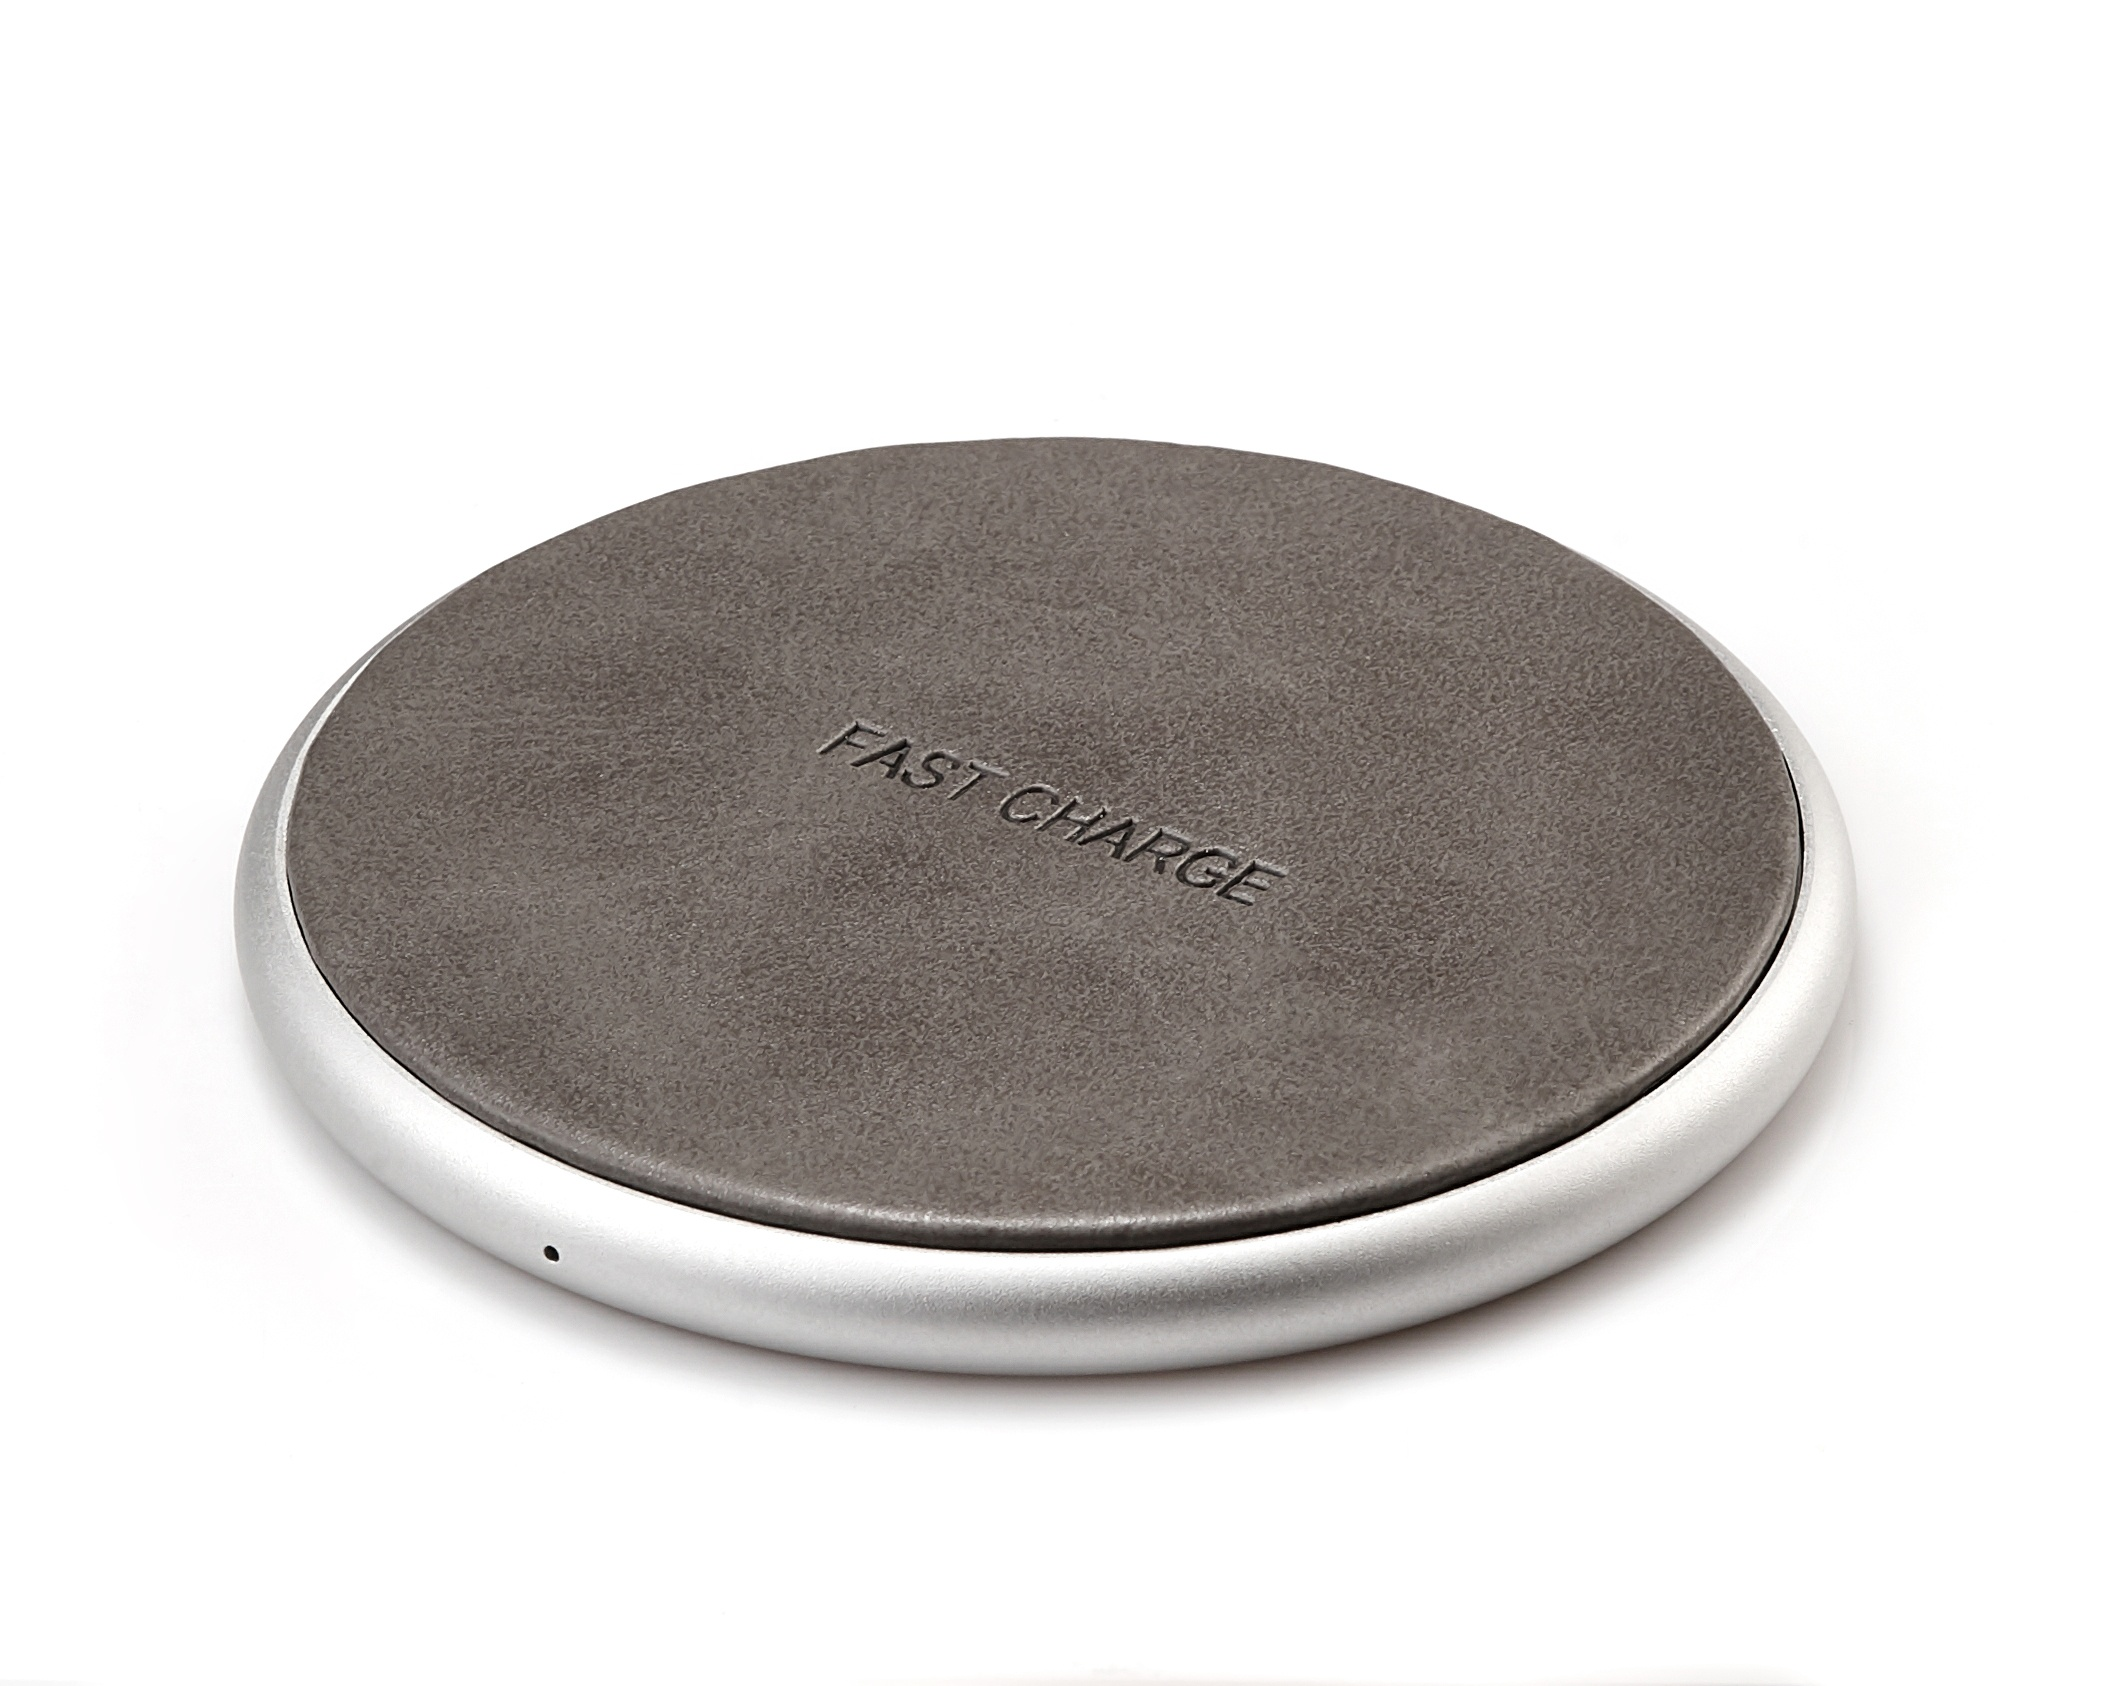 Micro input universal 5v 2a wireless charger for smart phones